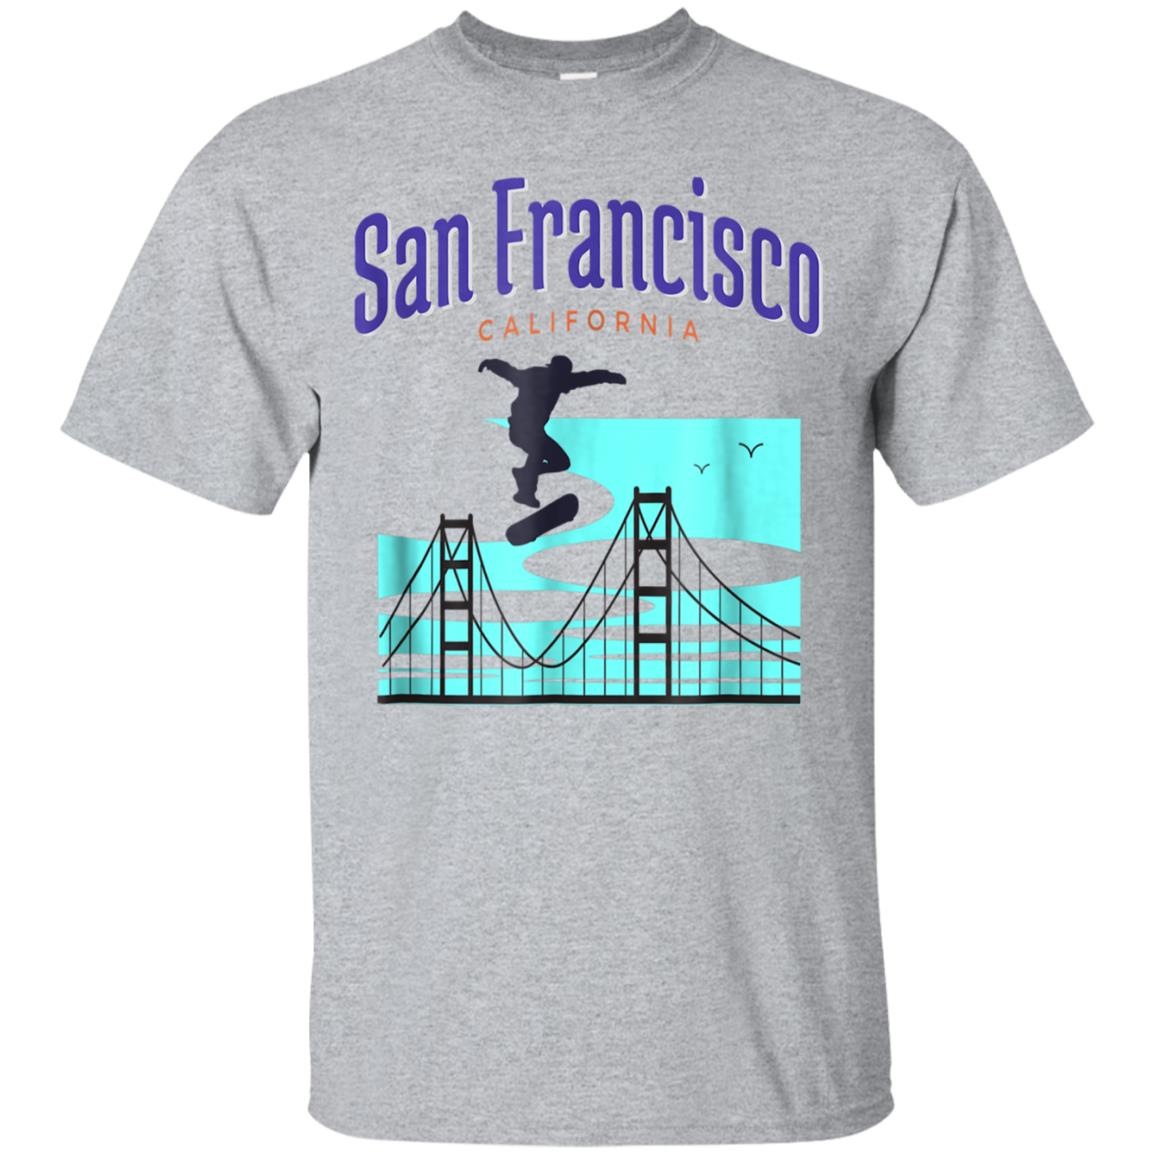 San Francisco California Skateboard T-Shirt 99promocode